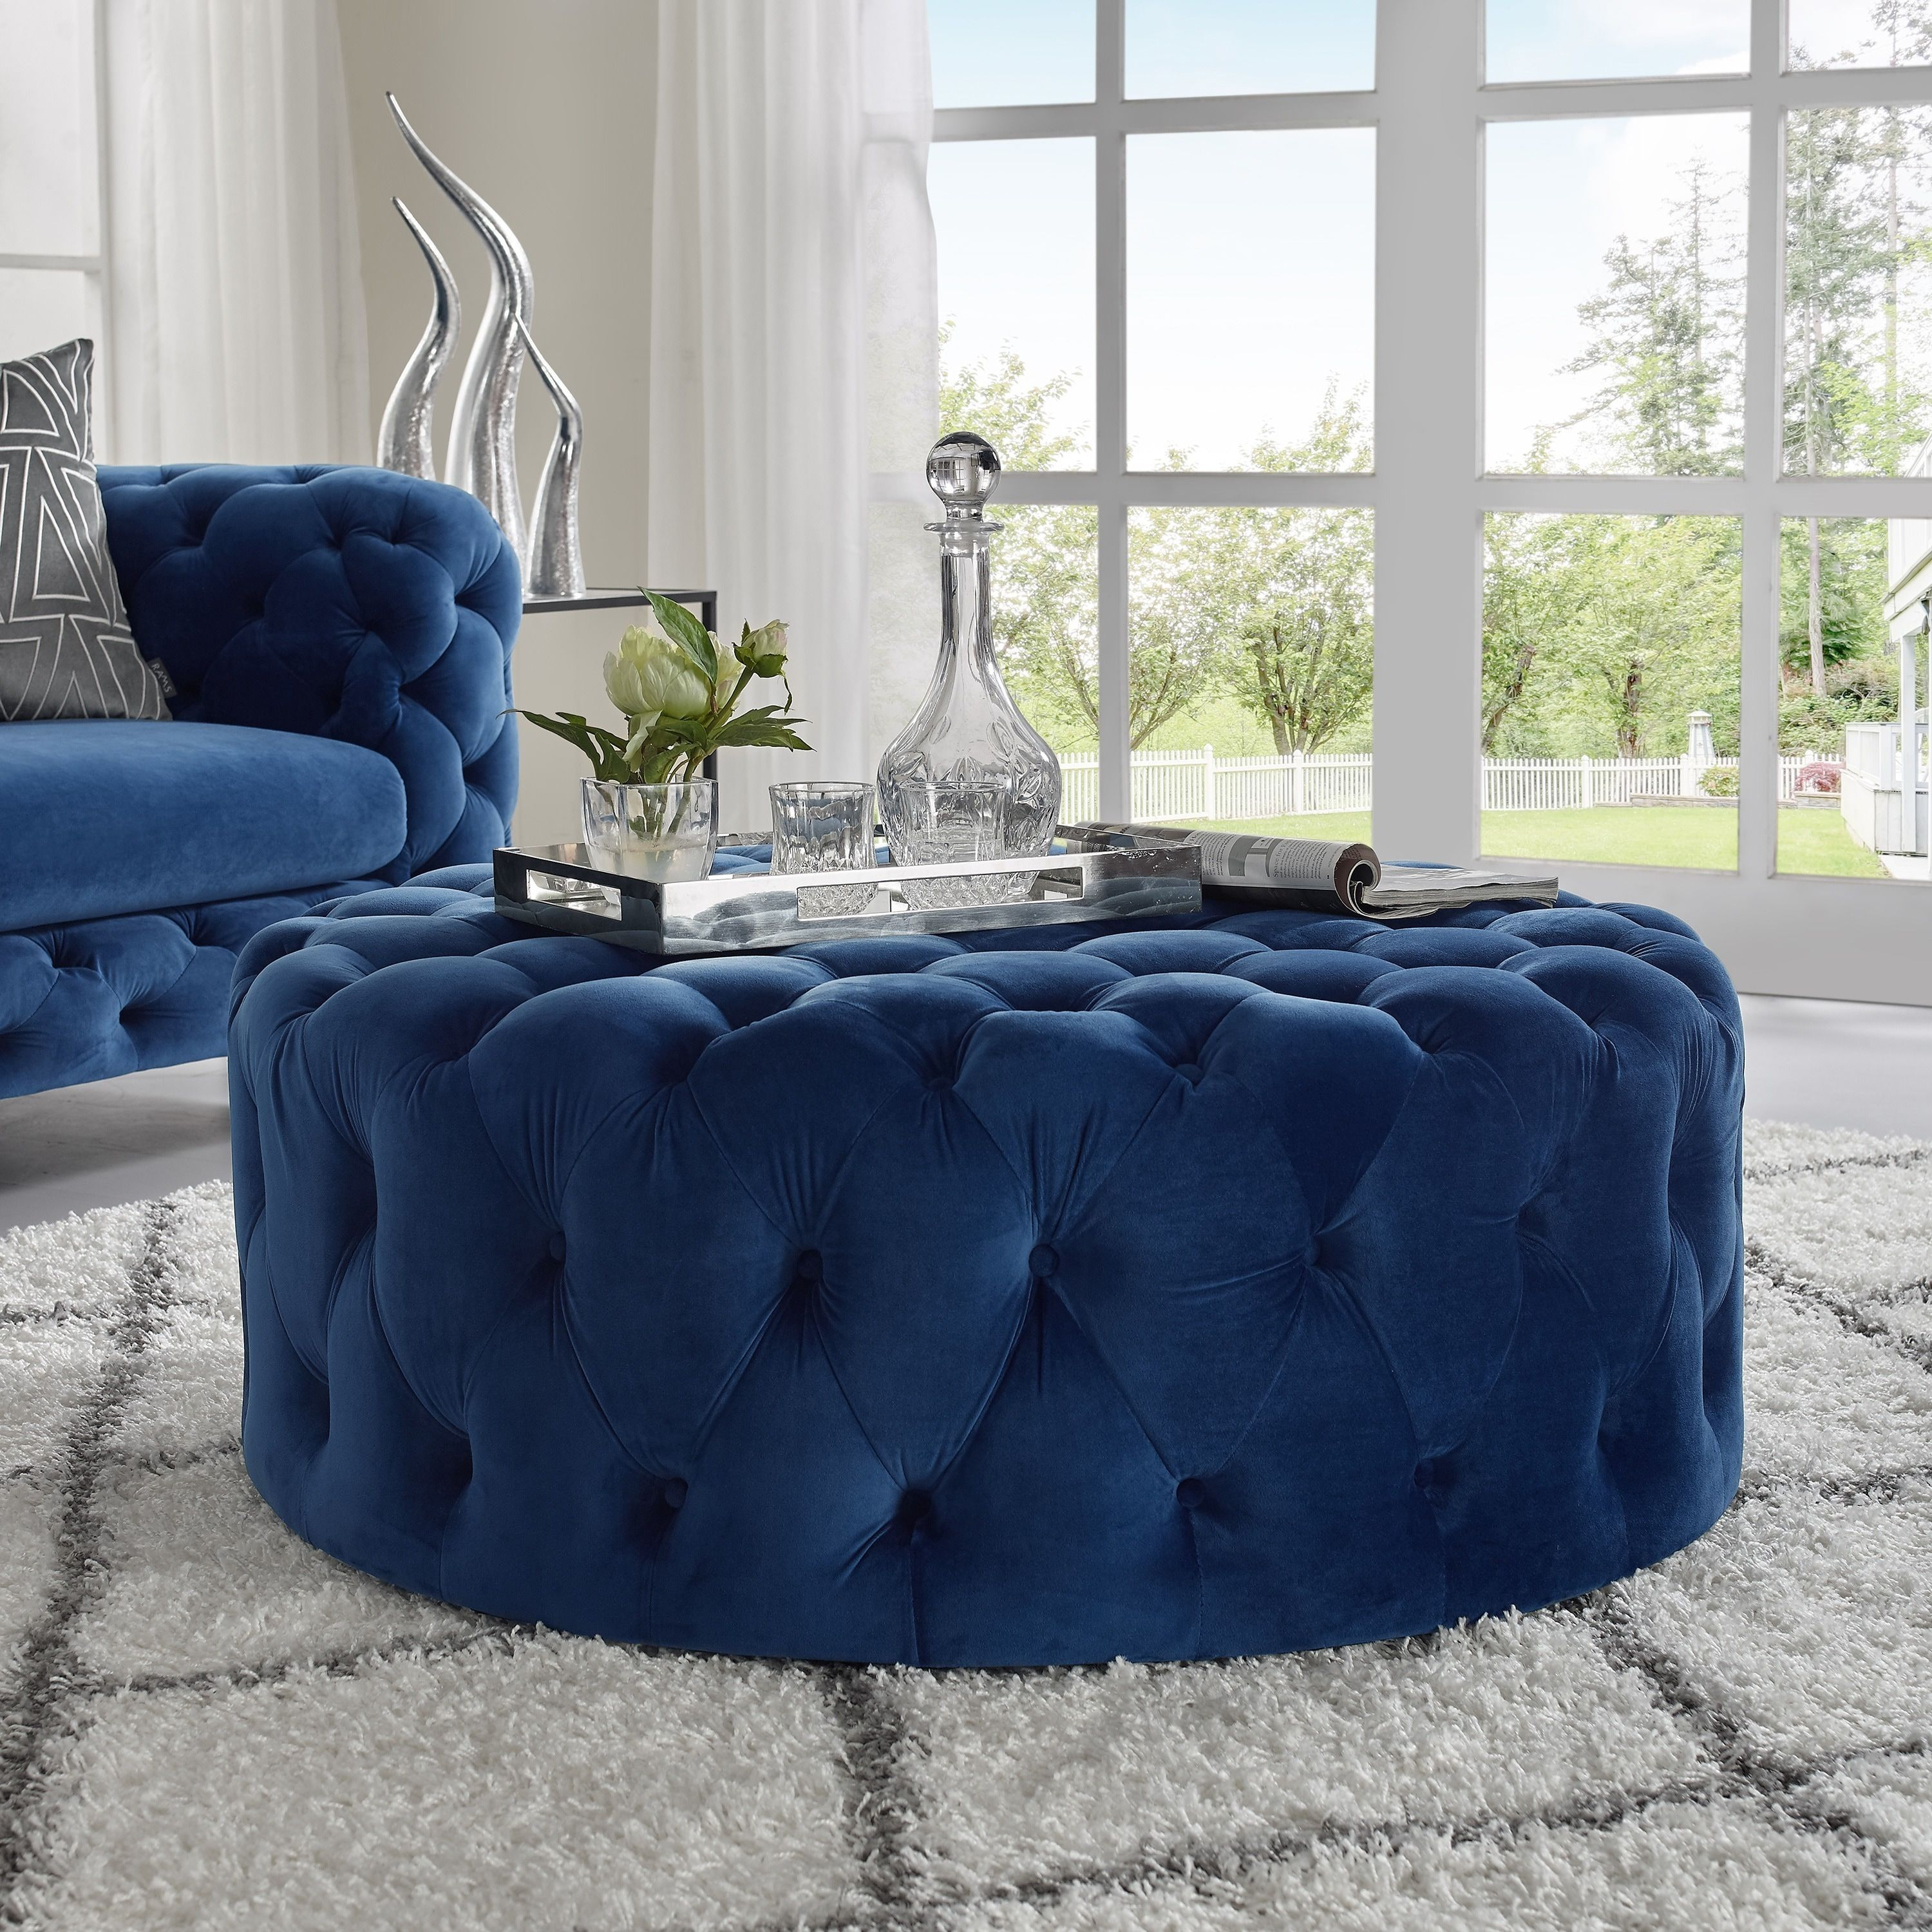 8e1345fb76830 Corvus Tufted Velvet Round Ottoman with Casters in 2019 | Family ...